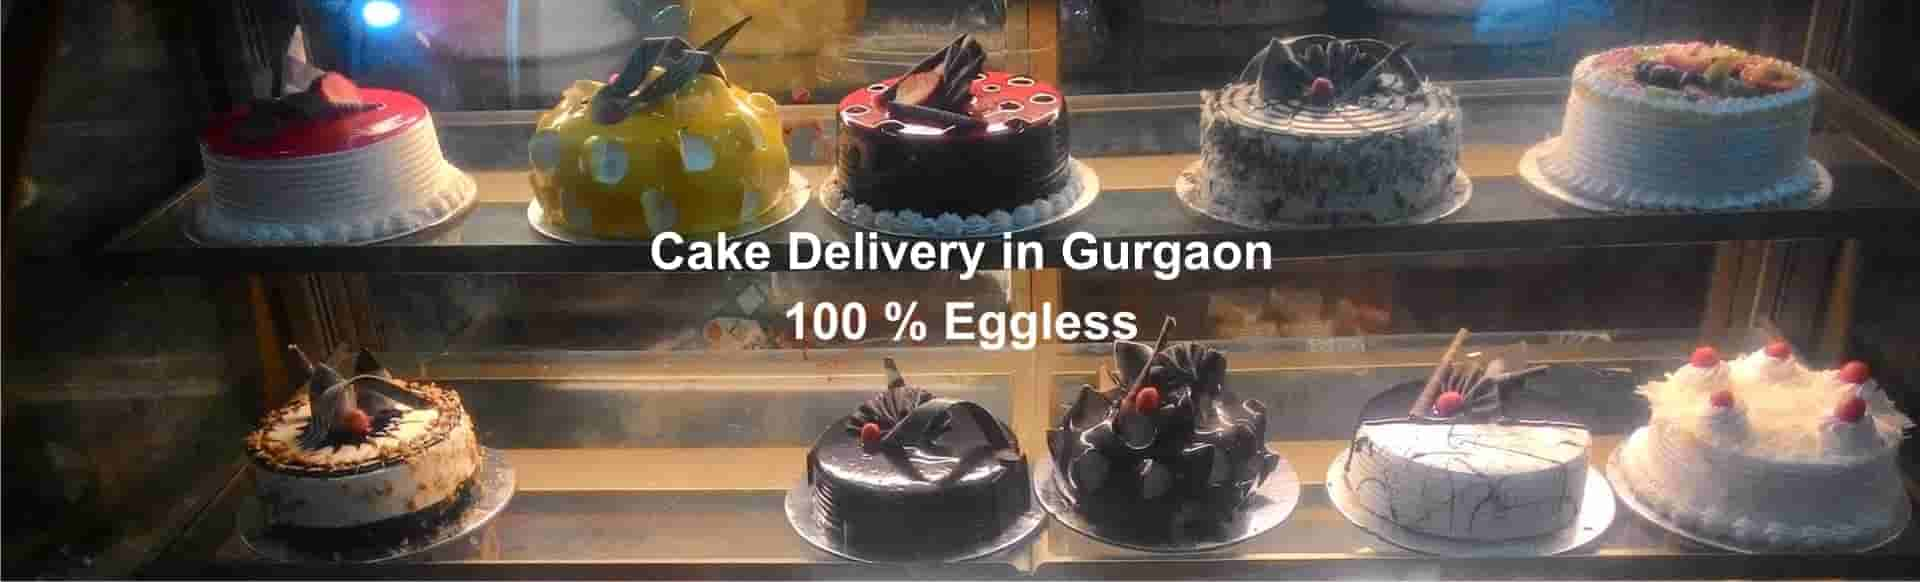 Cake Delivery In Gurgaon Cake Shop In Gurgaon Bakers Crown